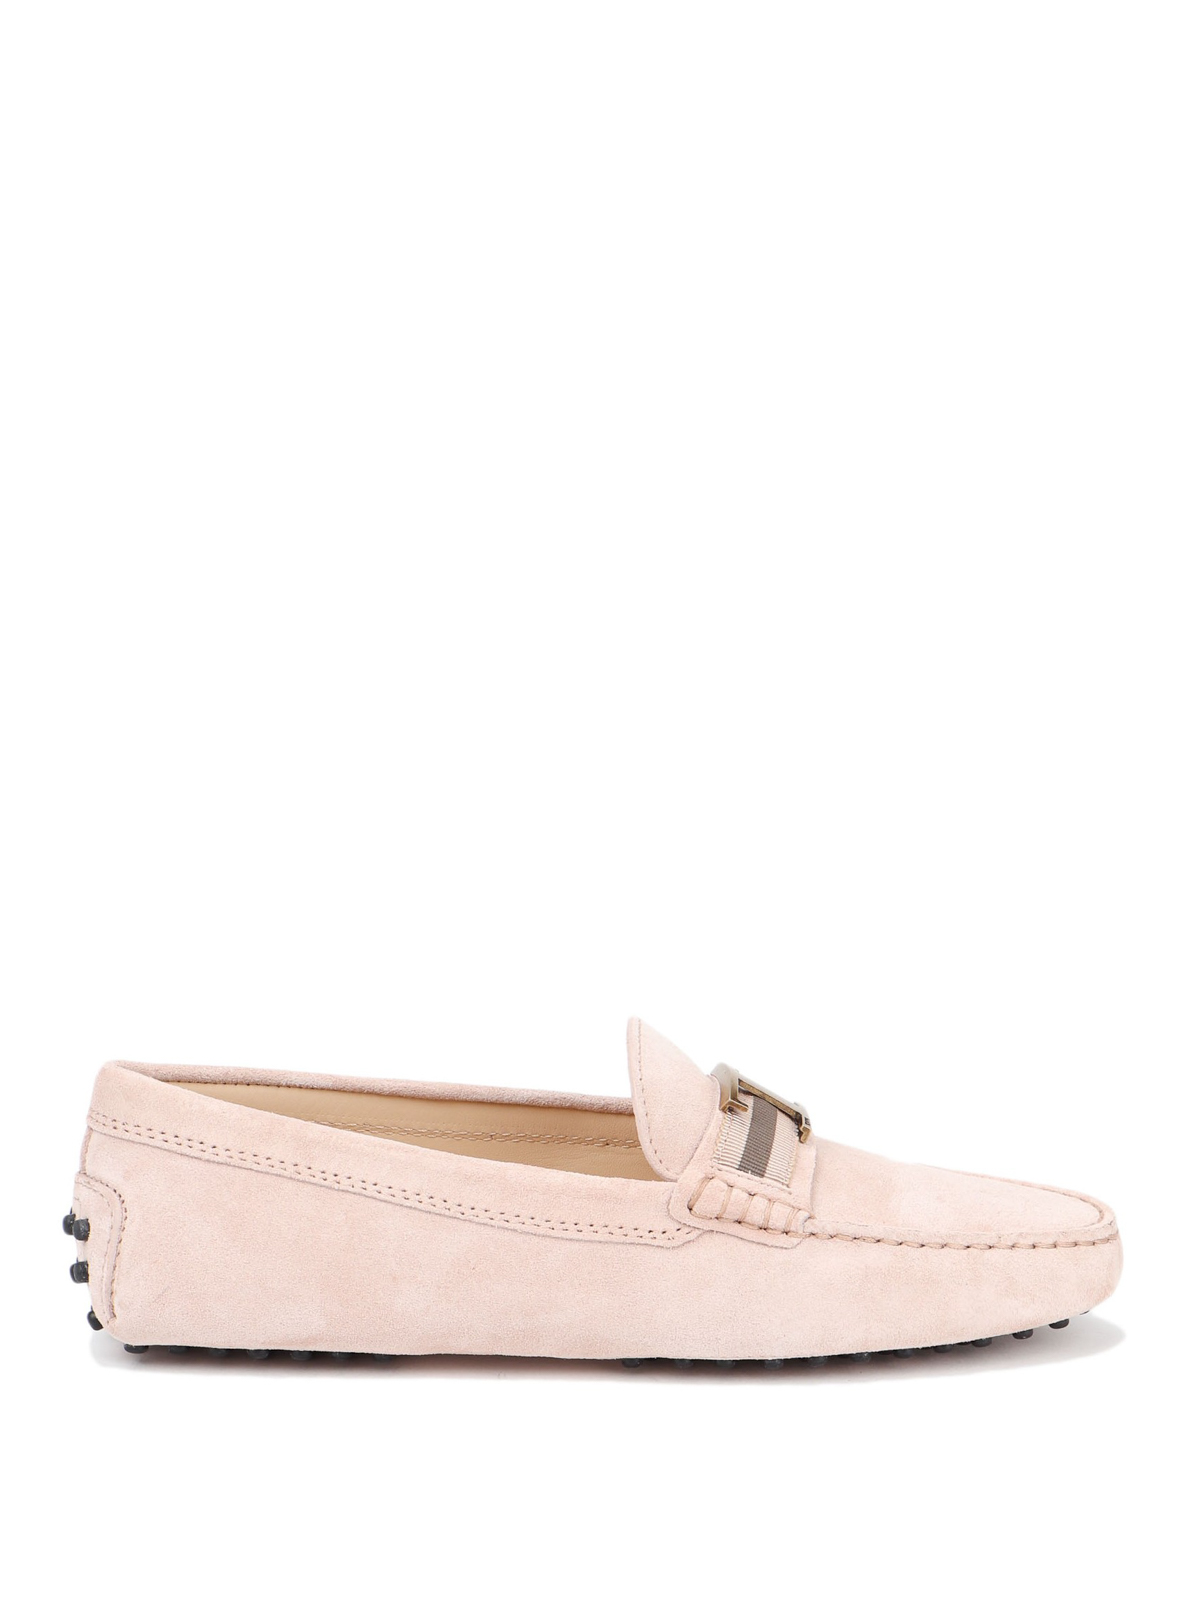 Gommino pink suede loafers - Loafers